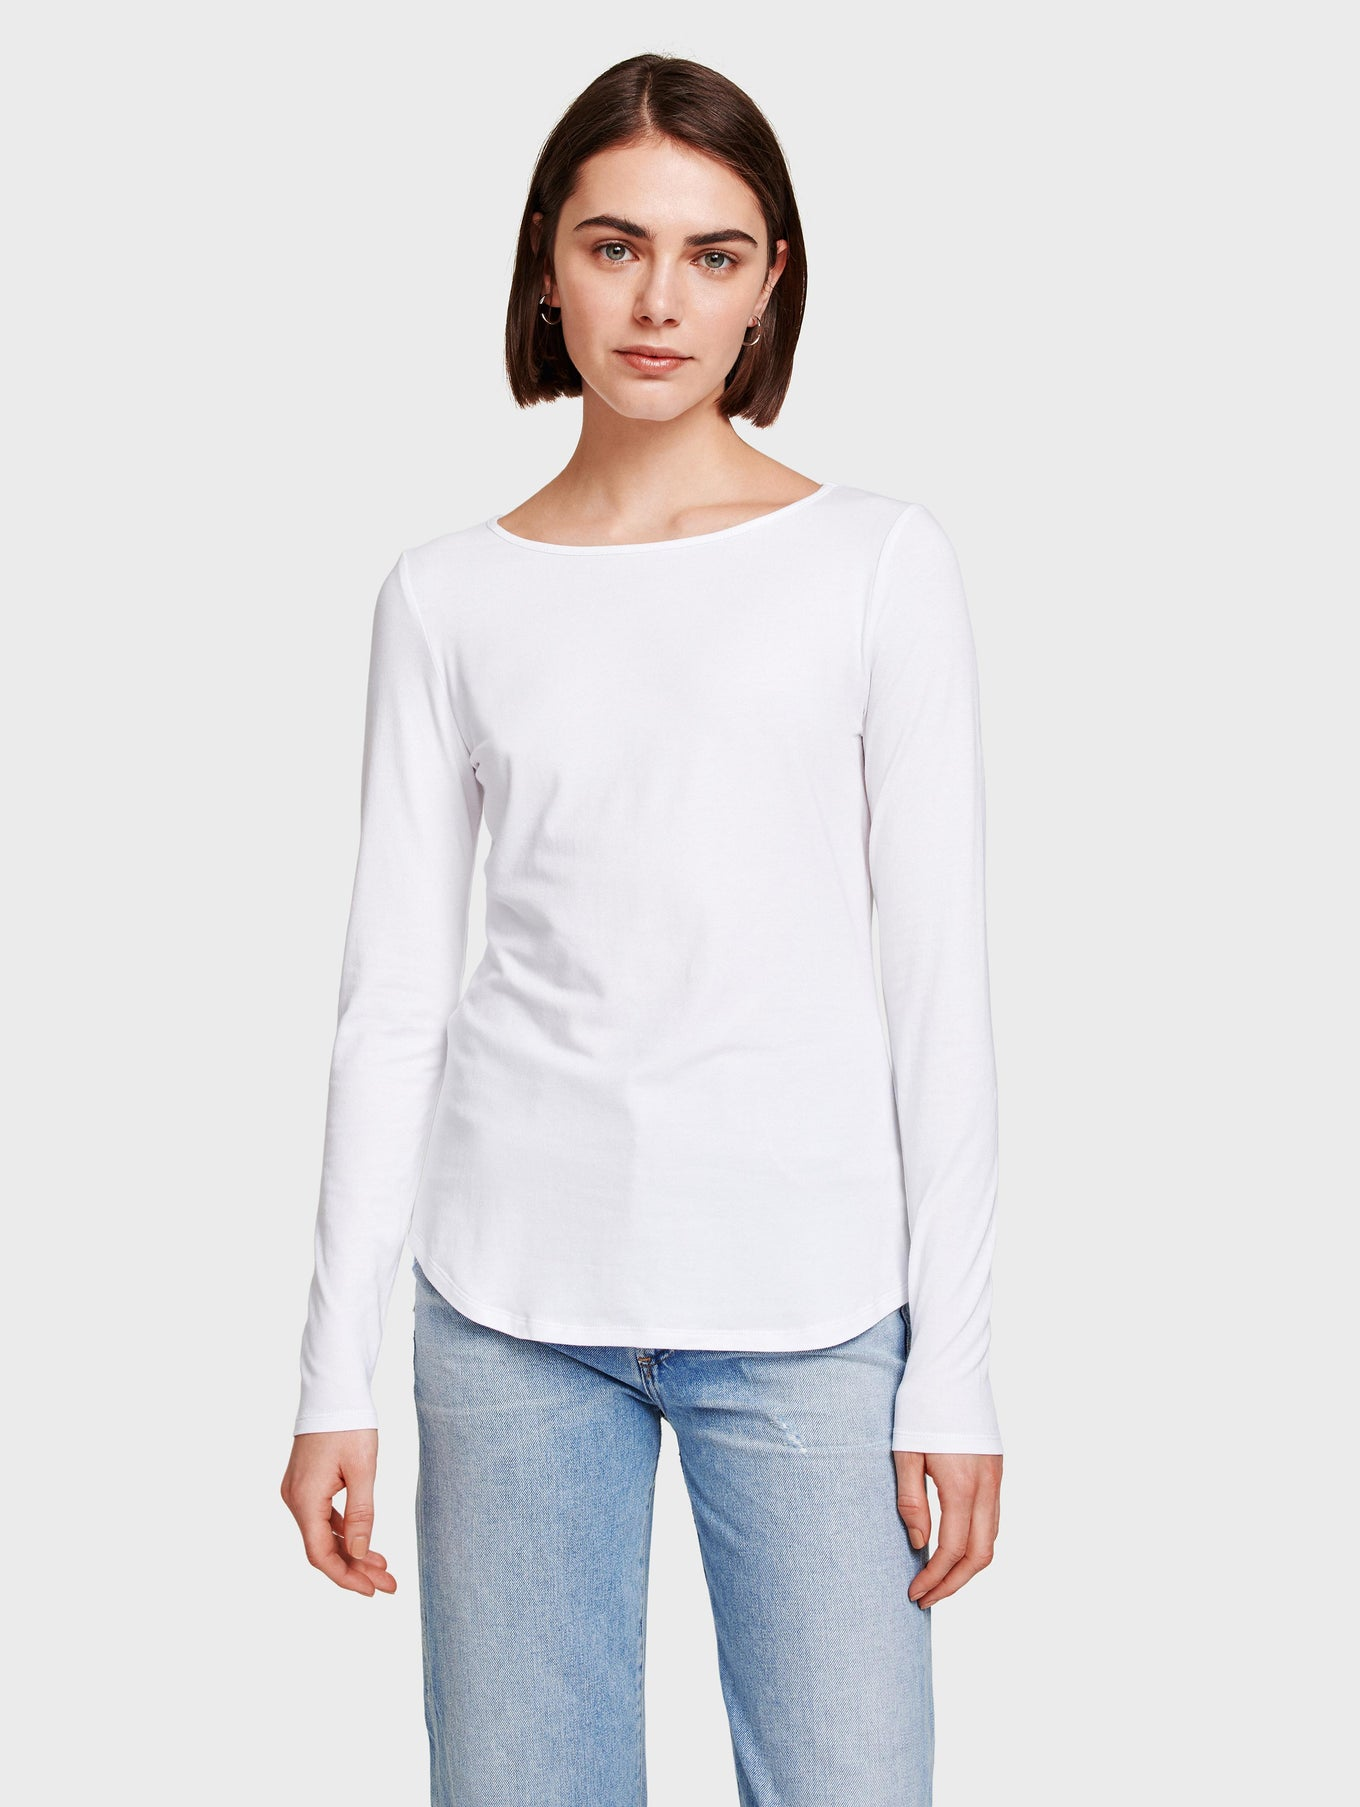 Cotton Modal Boat Neck Tee